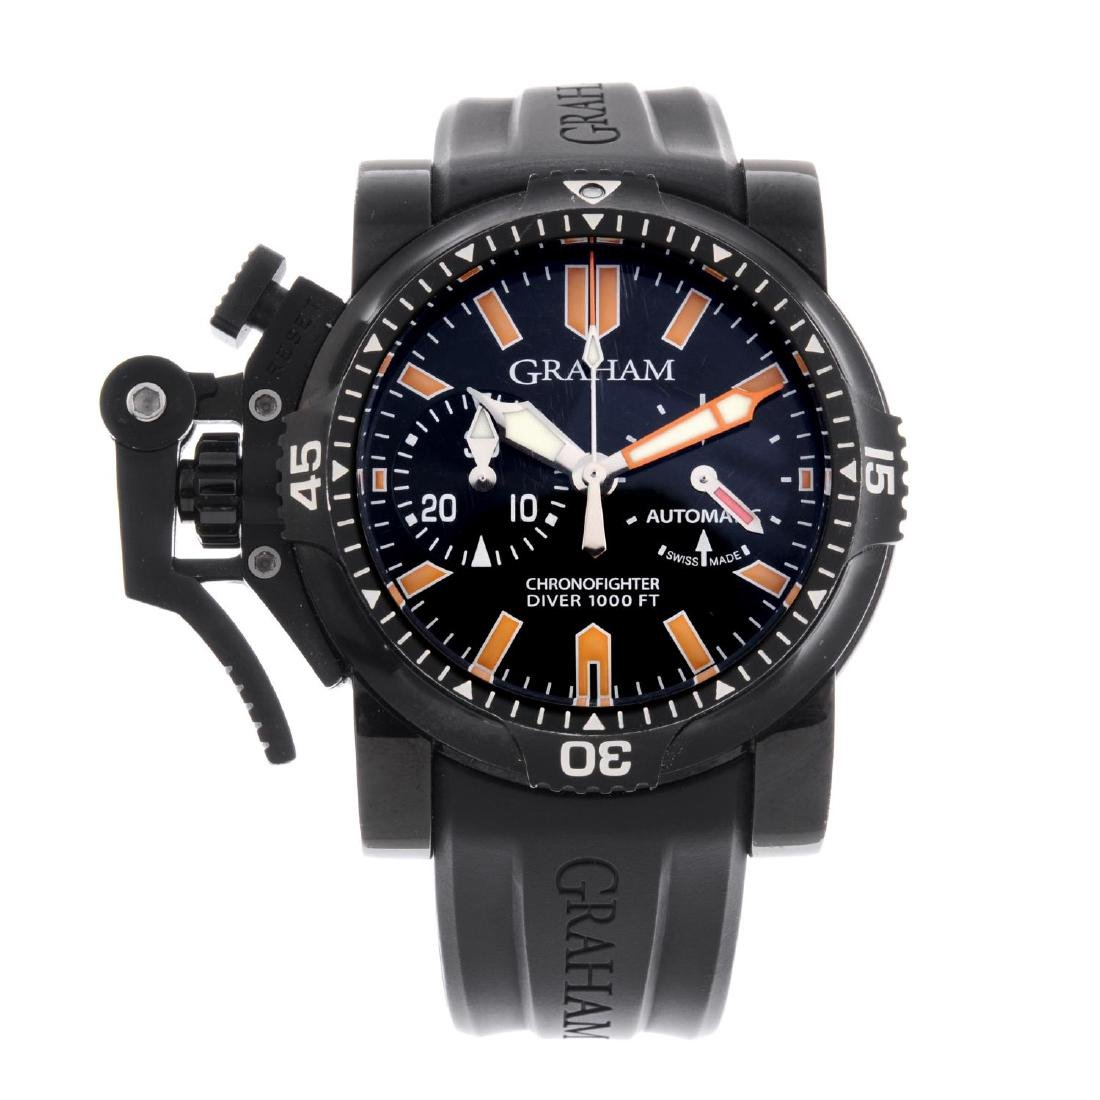 GRAHAM - a gentleman's Chronofighter Oversize Diver